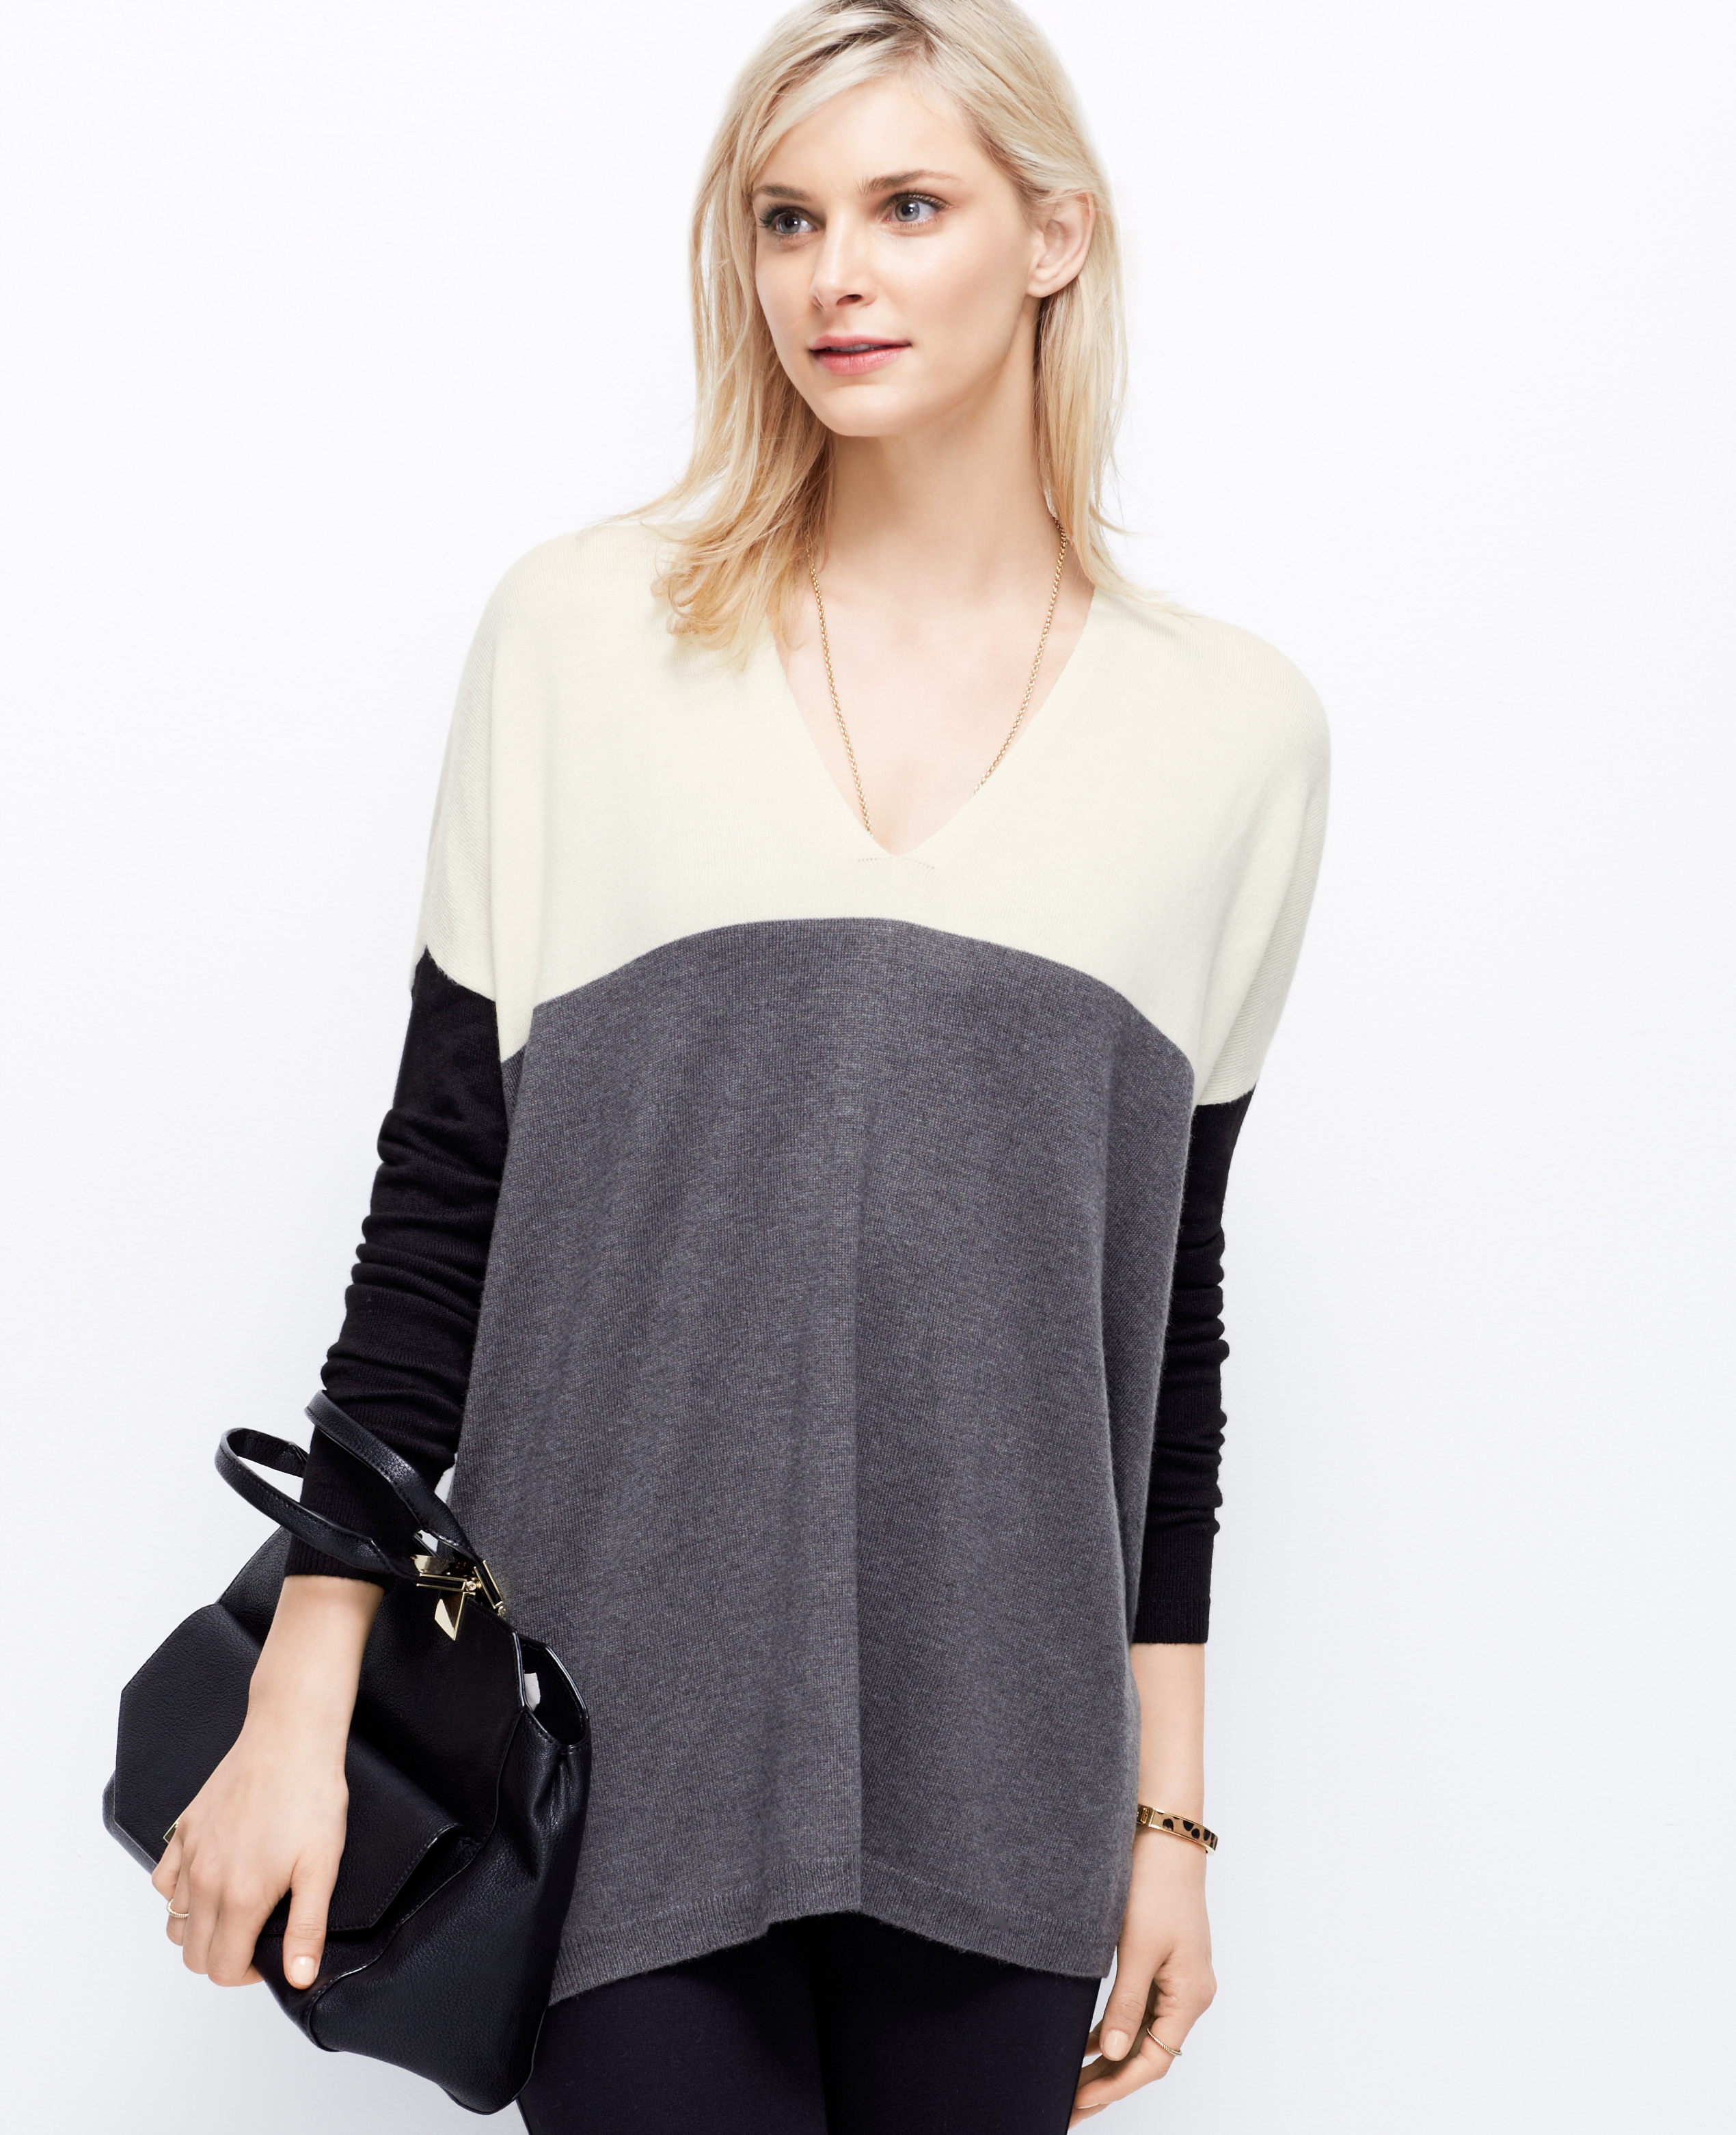 Ann taylor Petite Colorblock V-neck Tunic Sweater in Metallic | Lyst